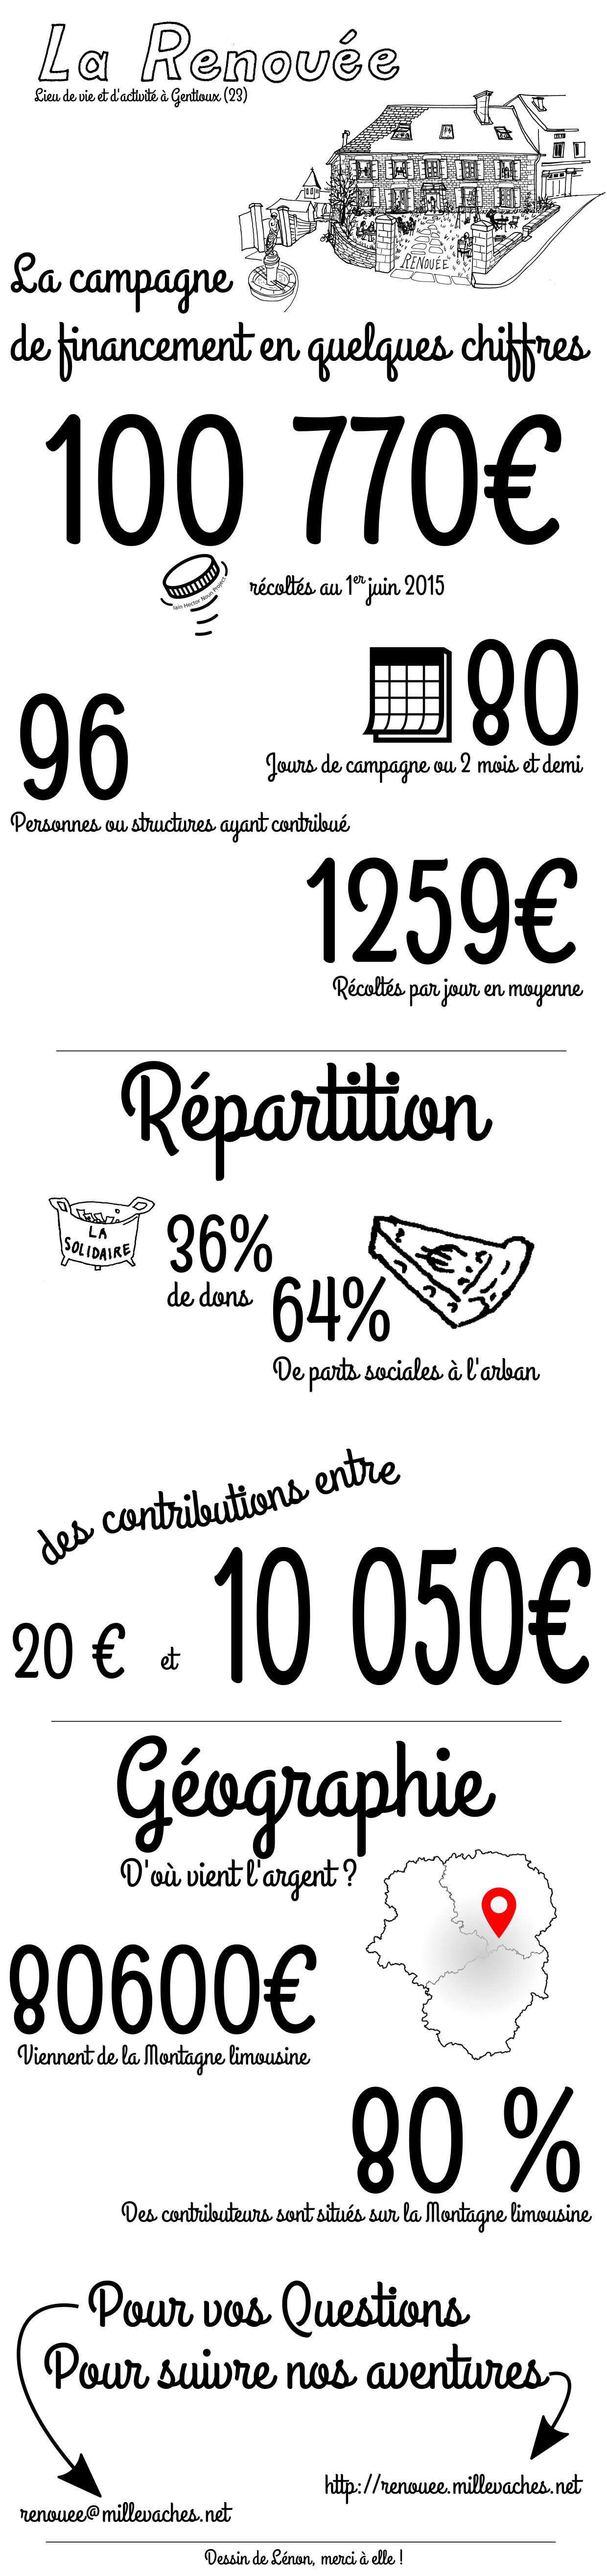 infographie_renouee